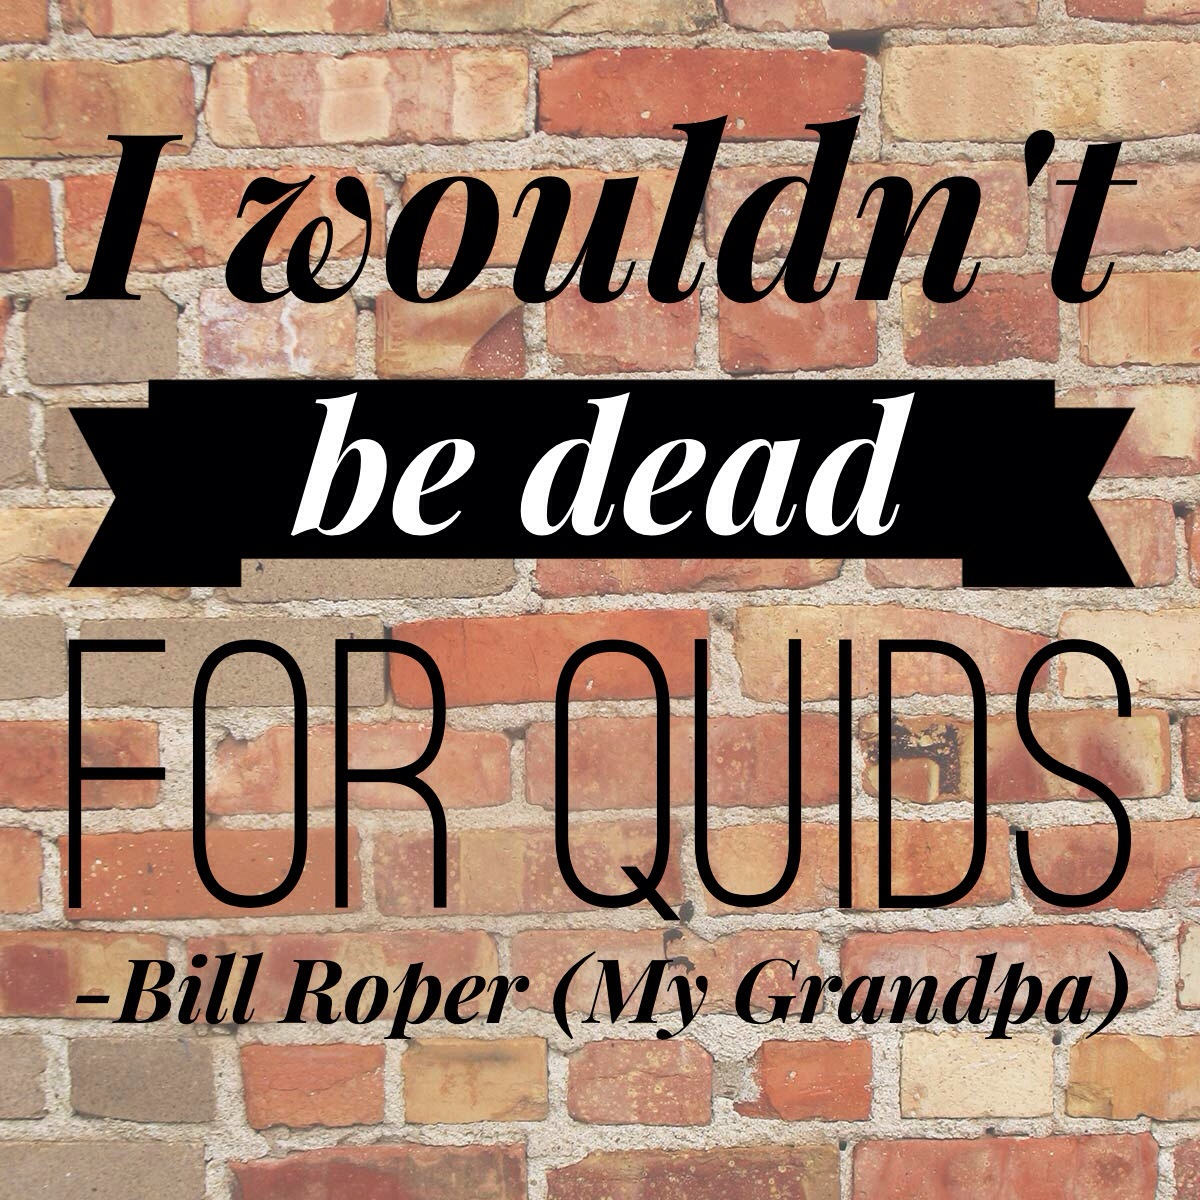 MummyMonday quote I wouldn t be dead for quids